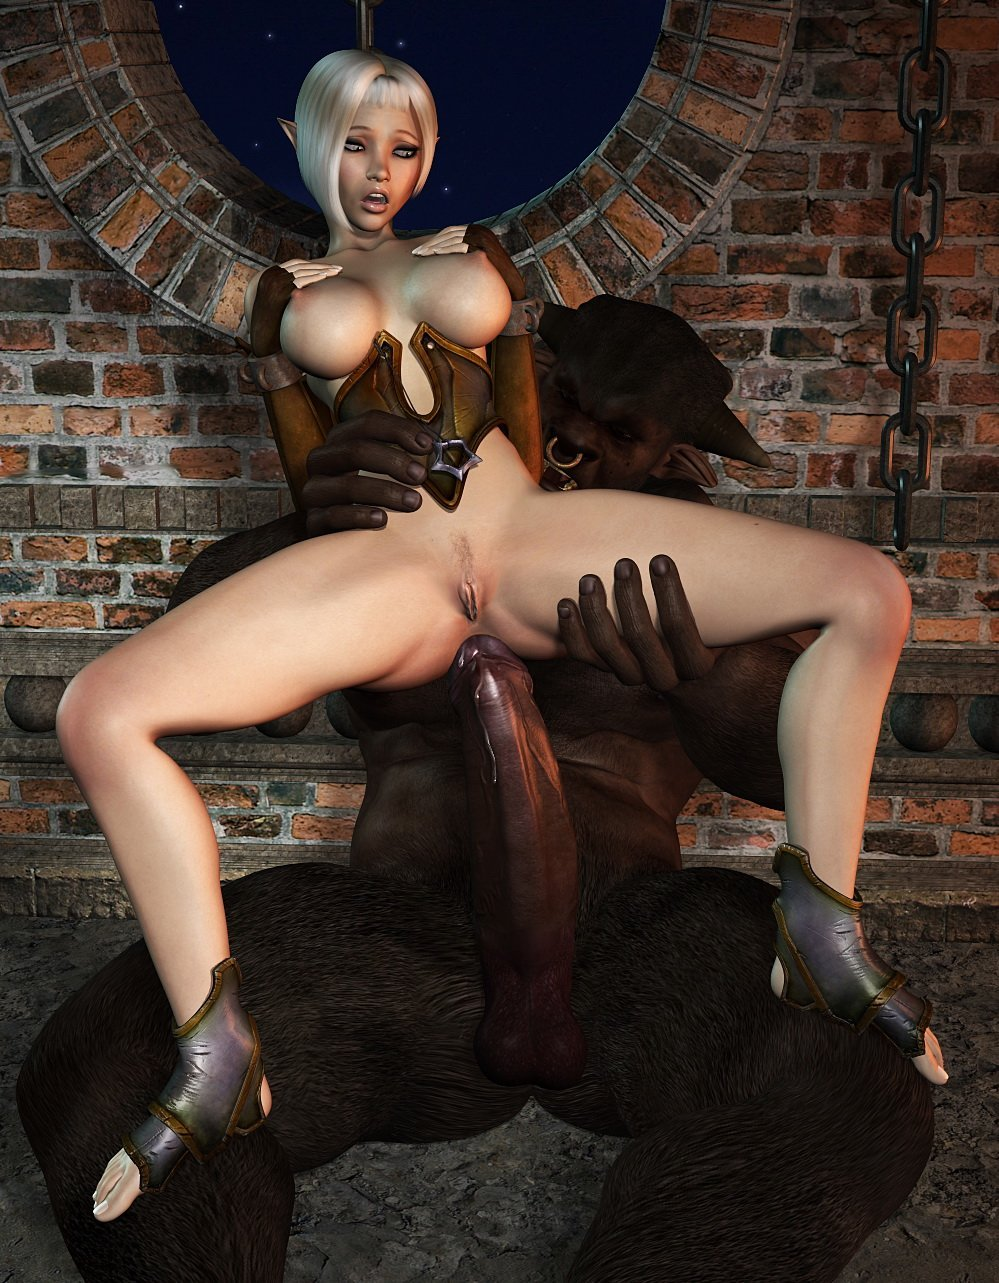 Cosplay demon fuck photo erotic scenes